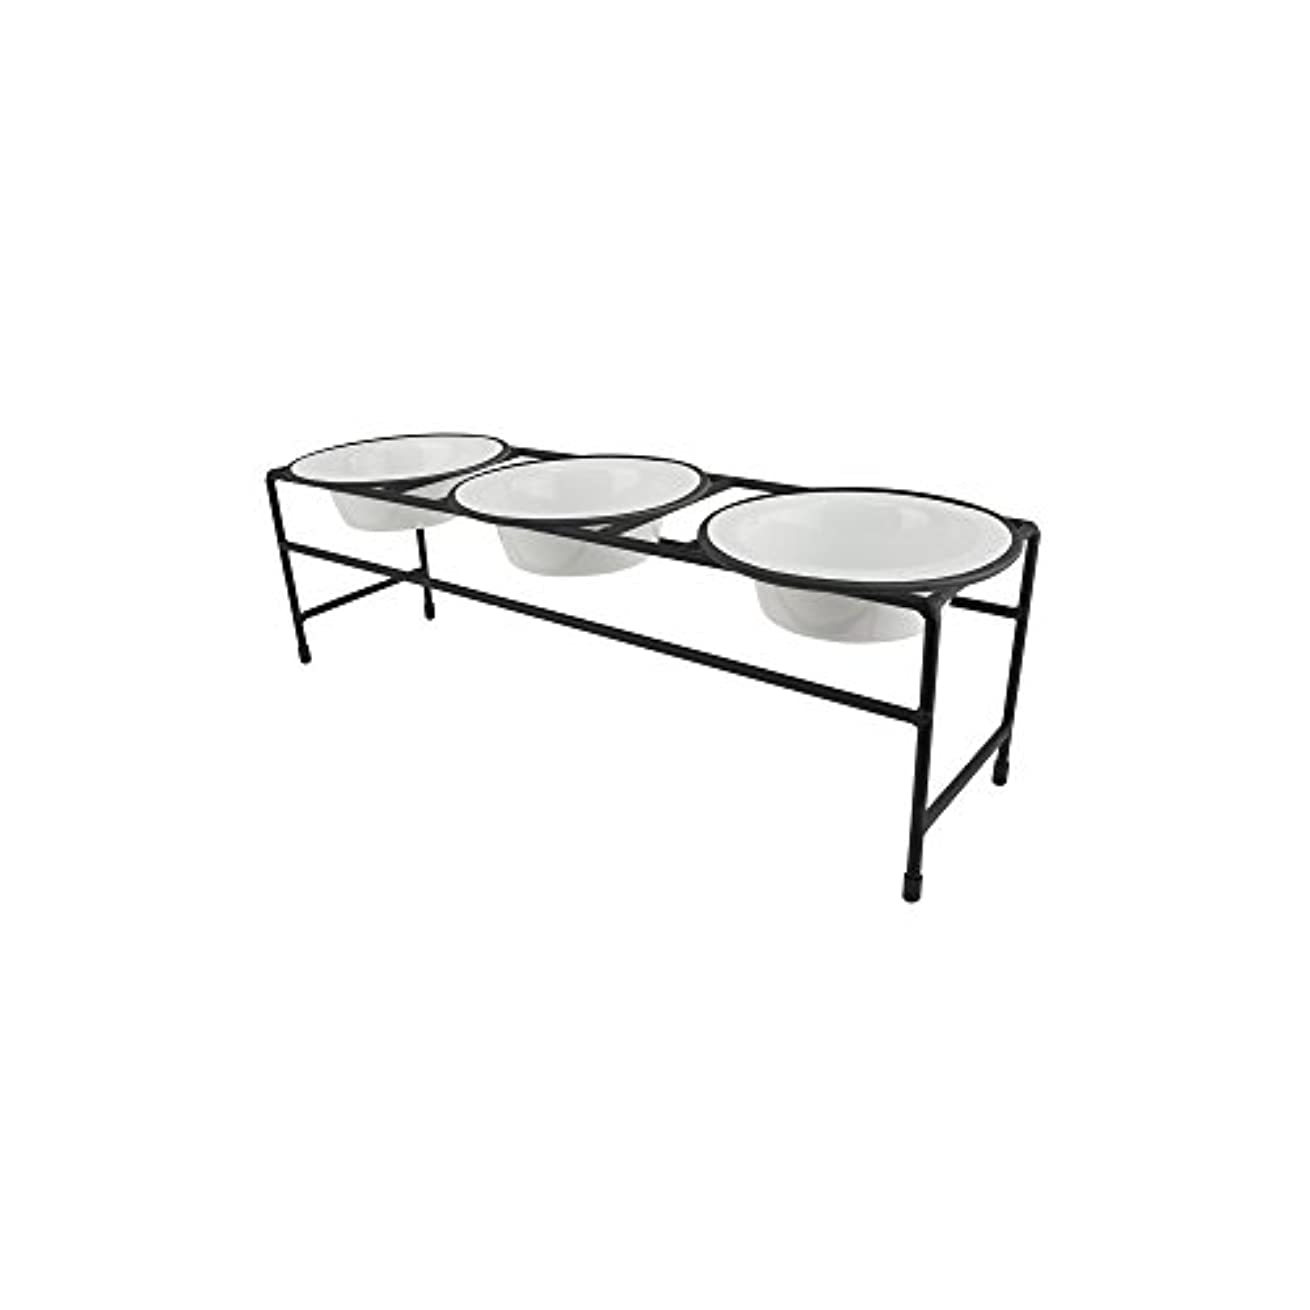 Platinum Pets Triple Modern Diner Stand with 1 Cup Stainless Steel Pet Bowls in Pearl White by Platinum Pets